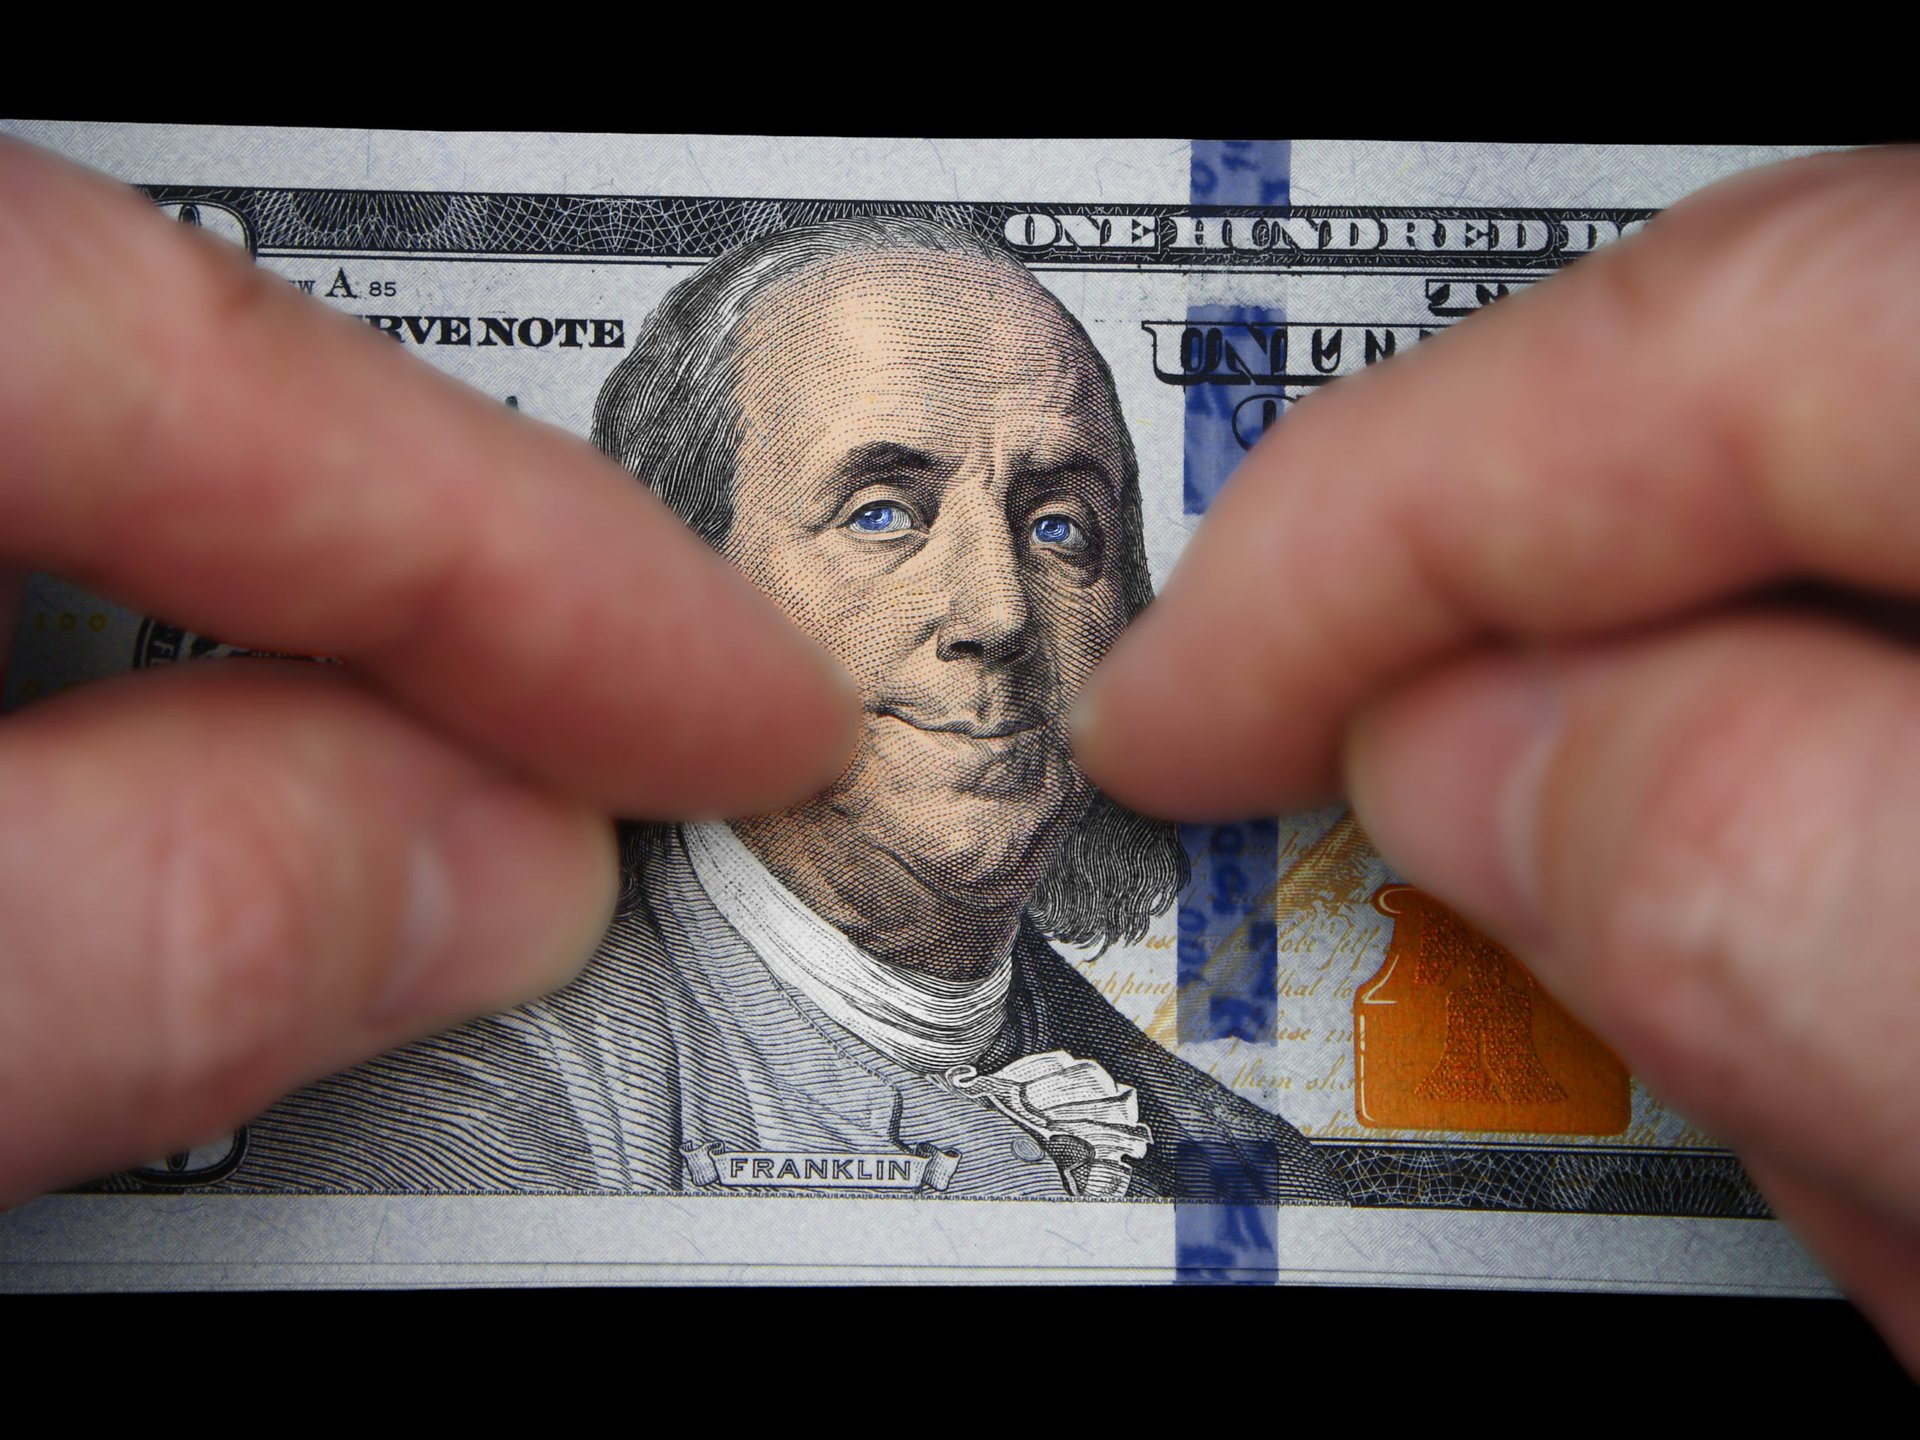 Benjamin Franklin smiles on a $100 bill because he is providing passive income